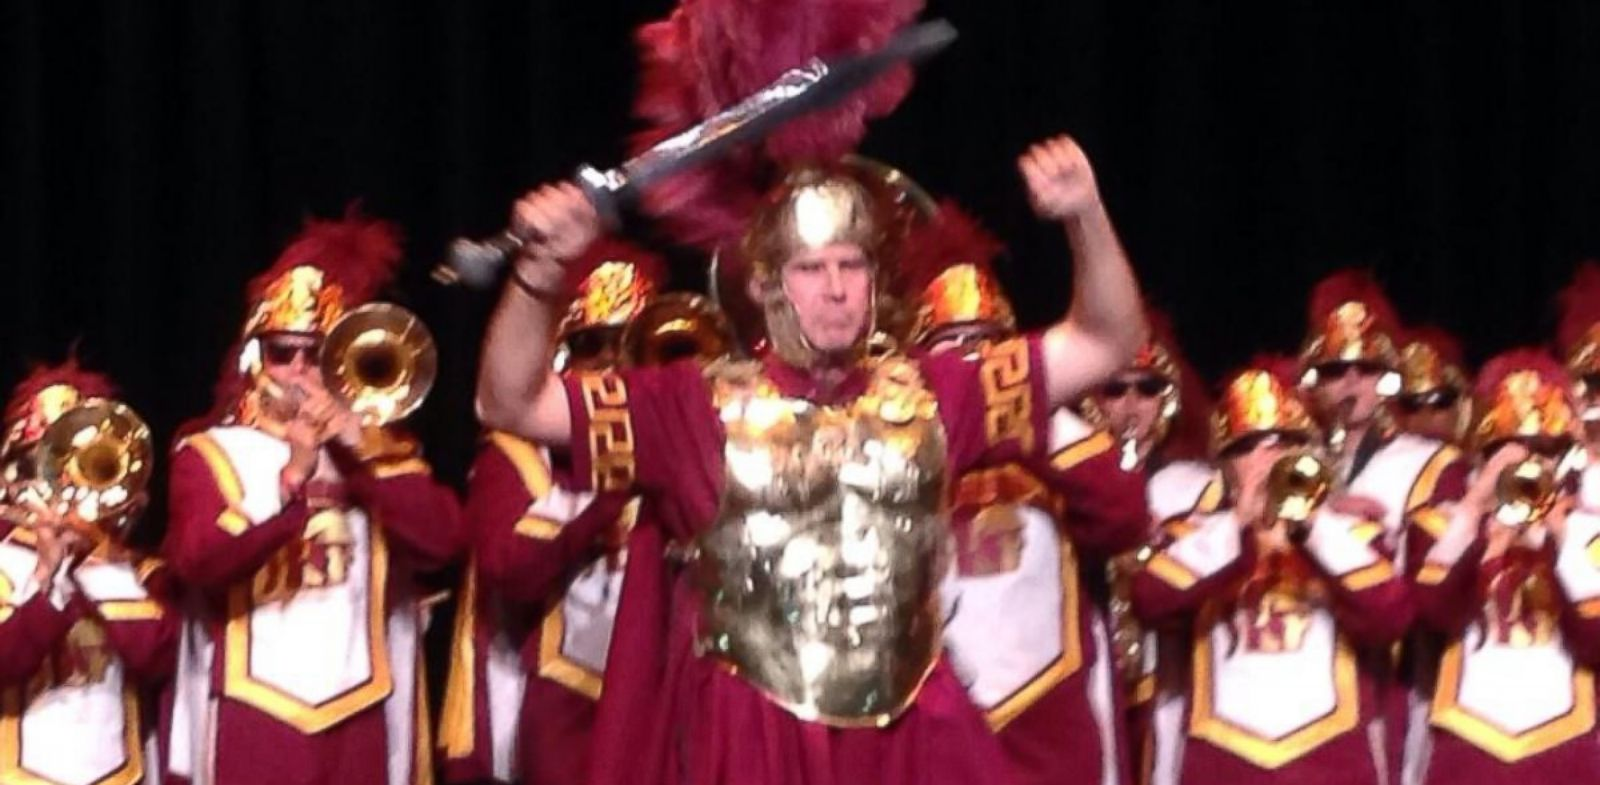 "PHOTO: Will Ferrell is seen leading the University of South California in full Trojan armor in this photo post to the athletic departments Twitter account on Oct. 14, 2013 with the caption, ""Will Ferrell at #USC! @CFCcharity #FightOn""."